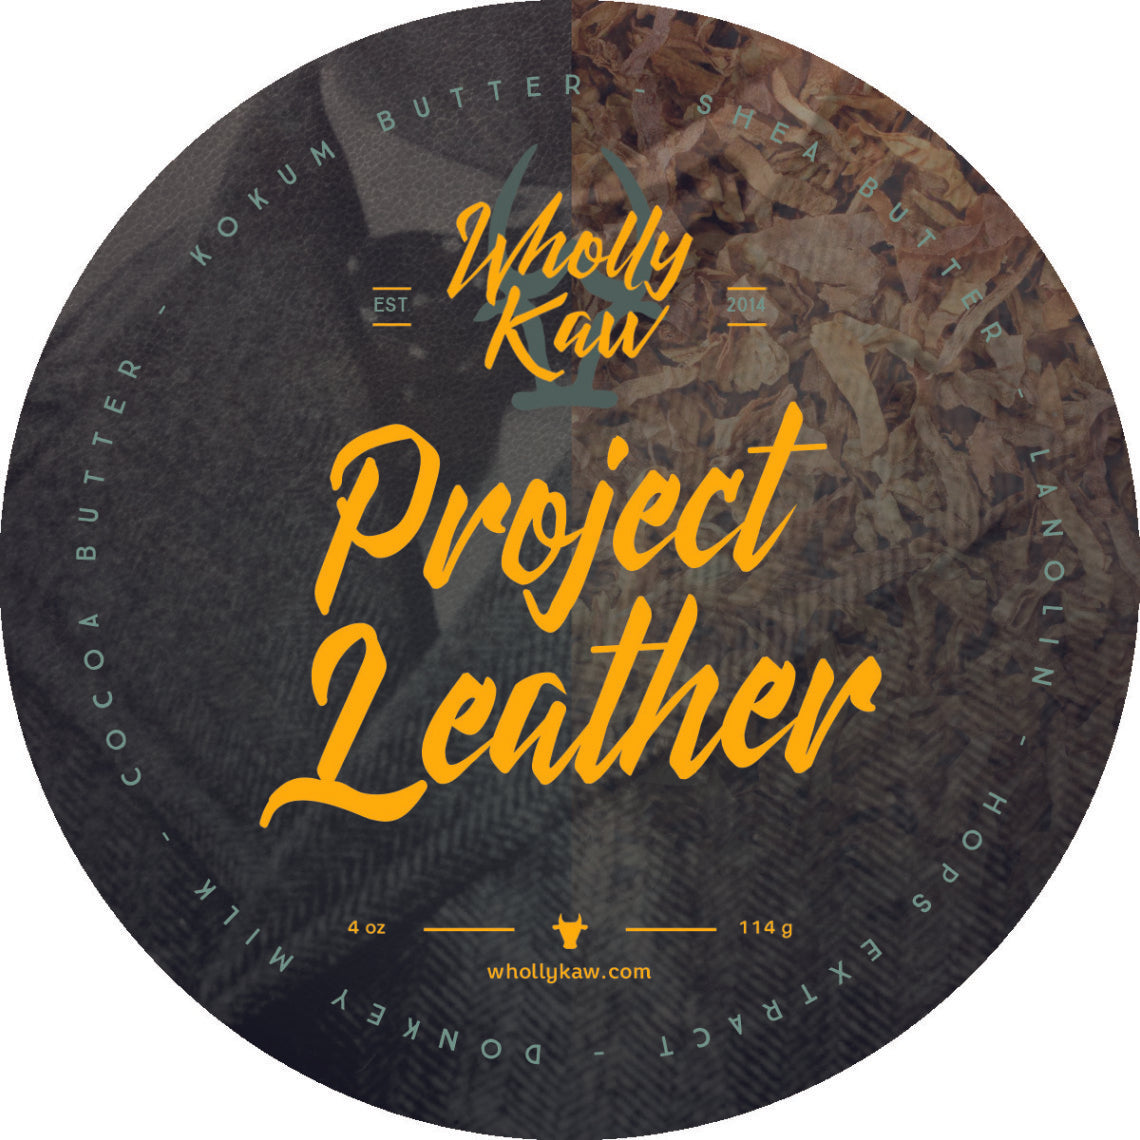 Wholly Kaw Project Leather Shave Soap